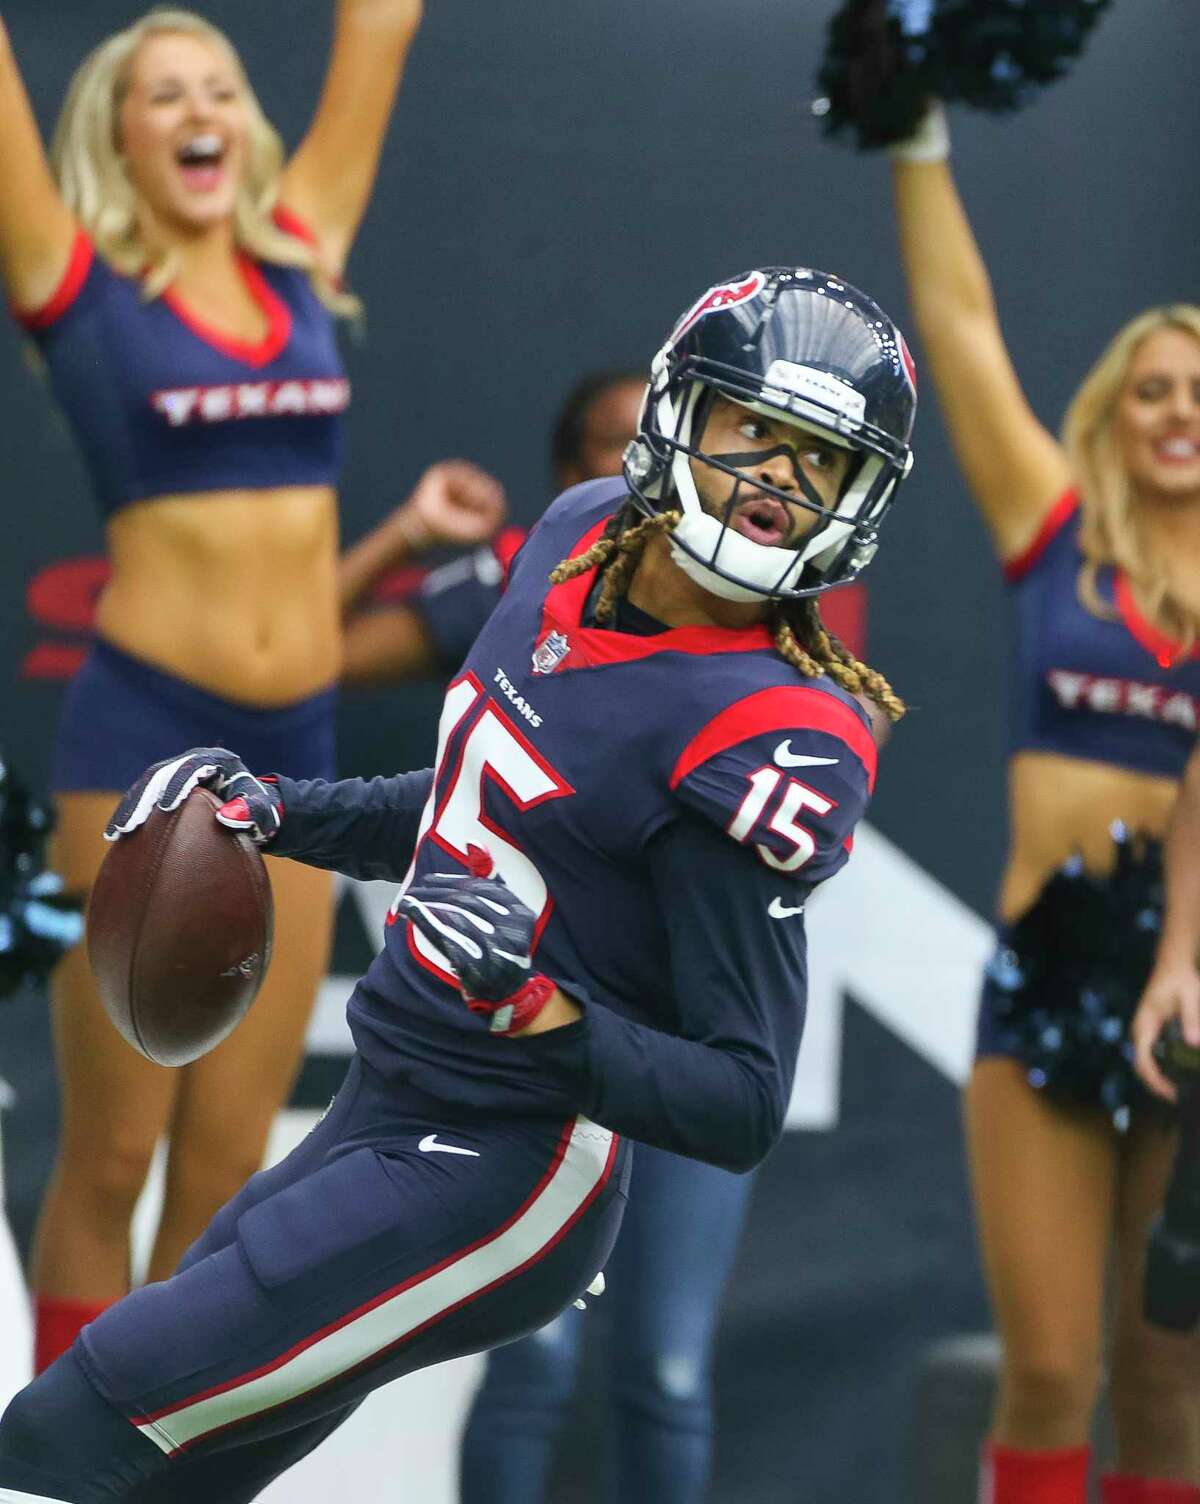 Houston Texans wide receiver Will Fuller (15) celebrates his touchdown during the first quarter of an NFL football game at NRG Stadium on Sunday, Oct. 15, 2017, in Houston.